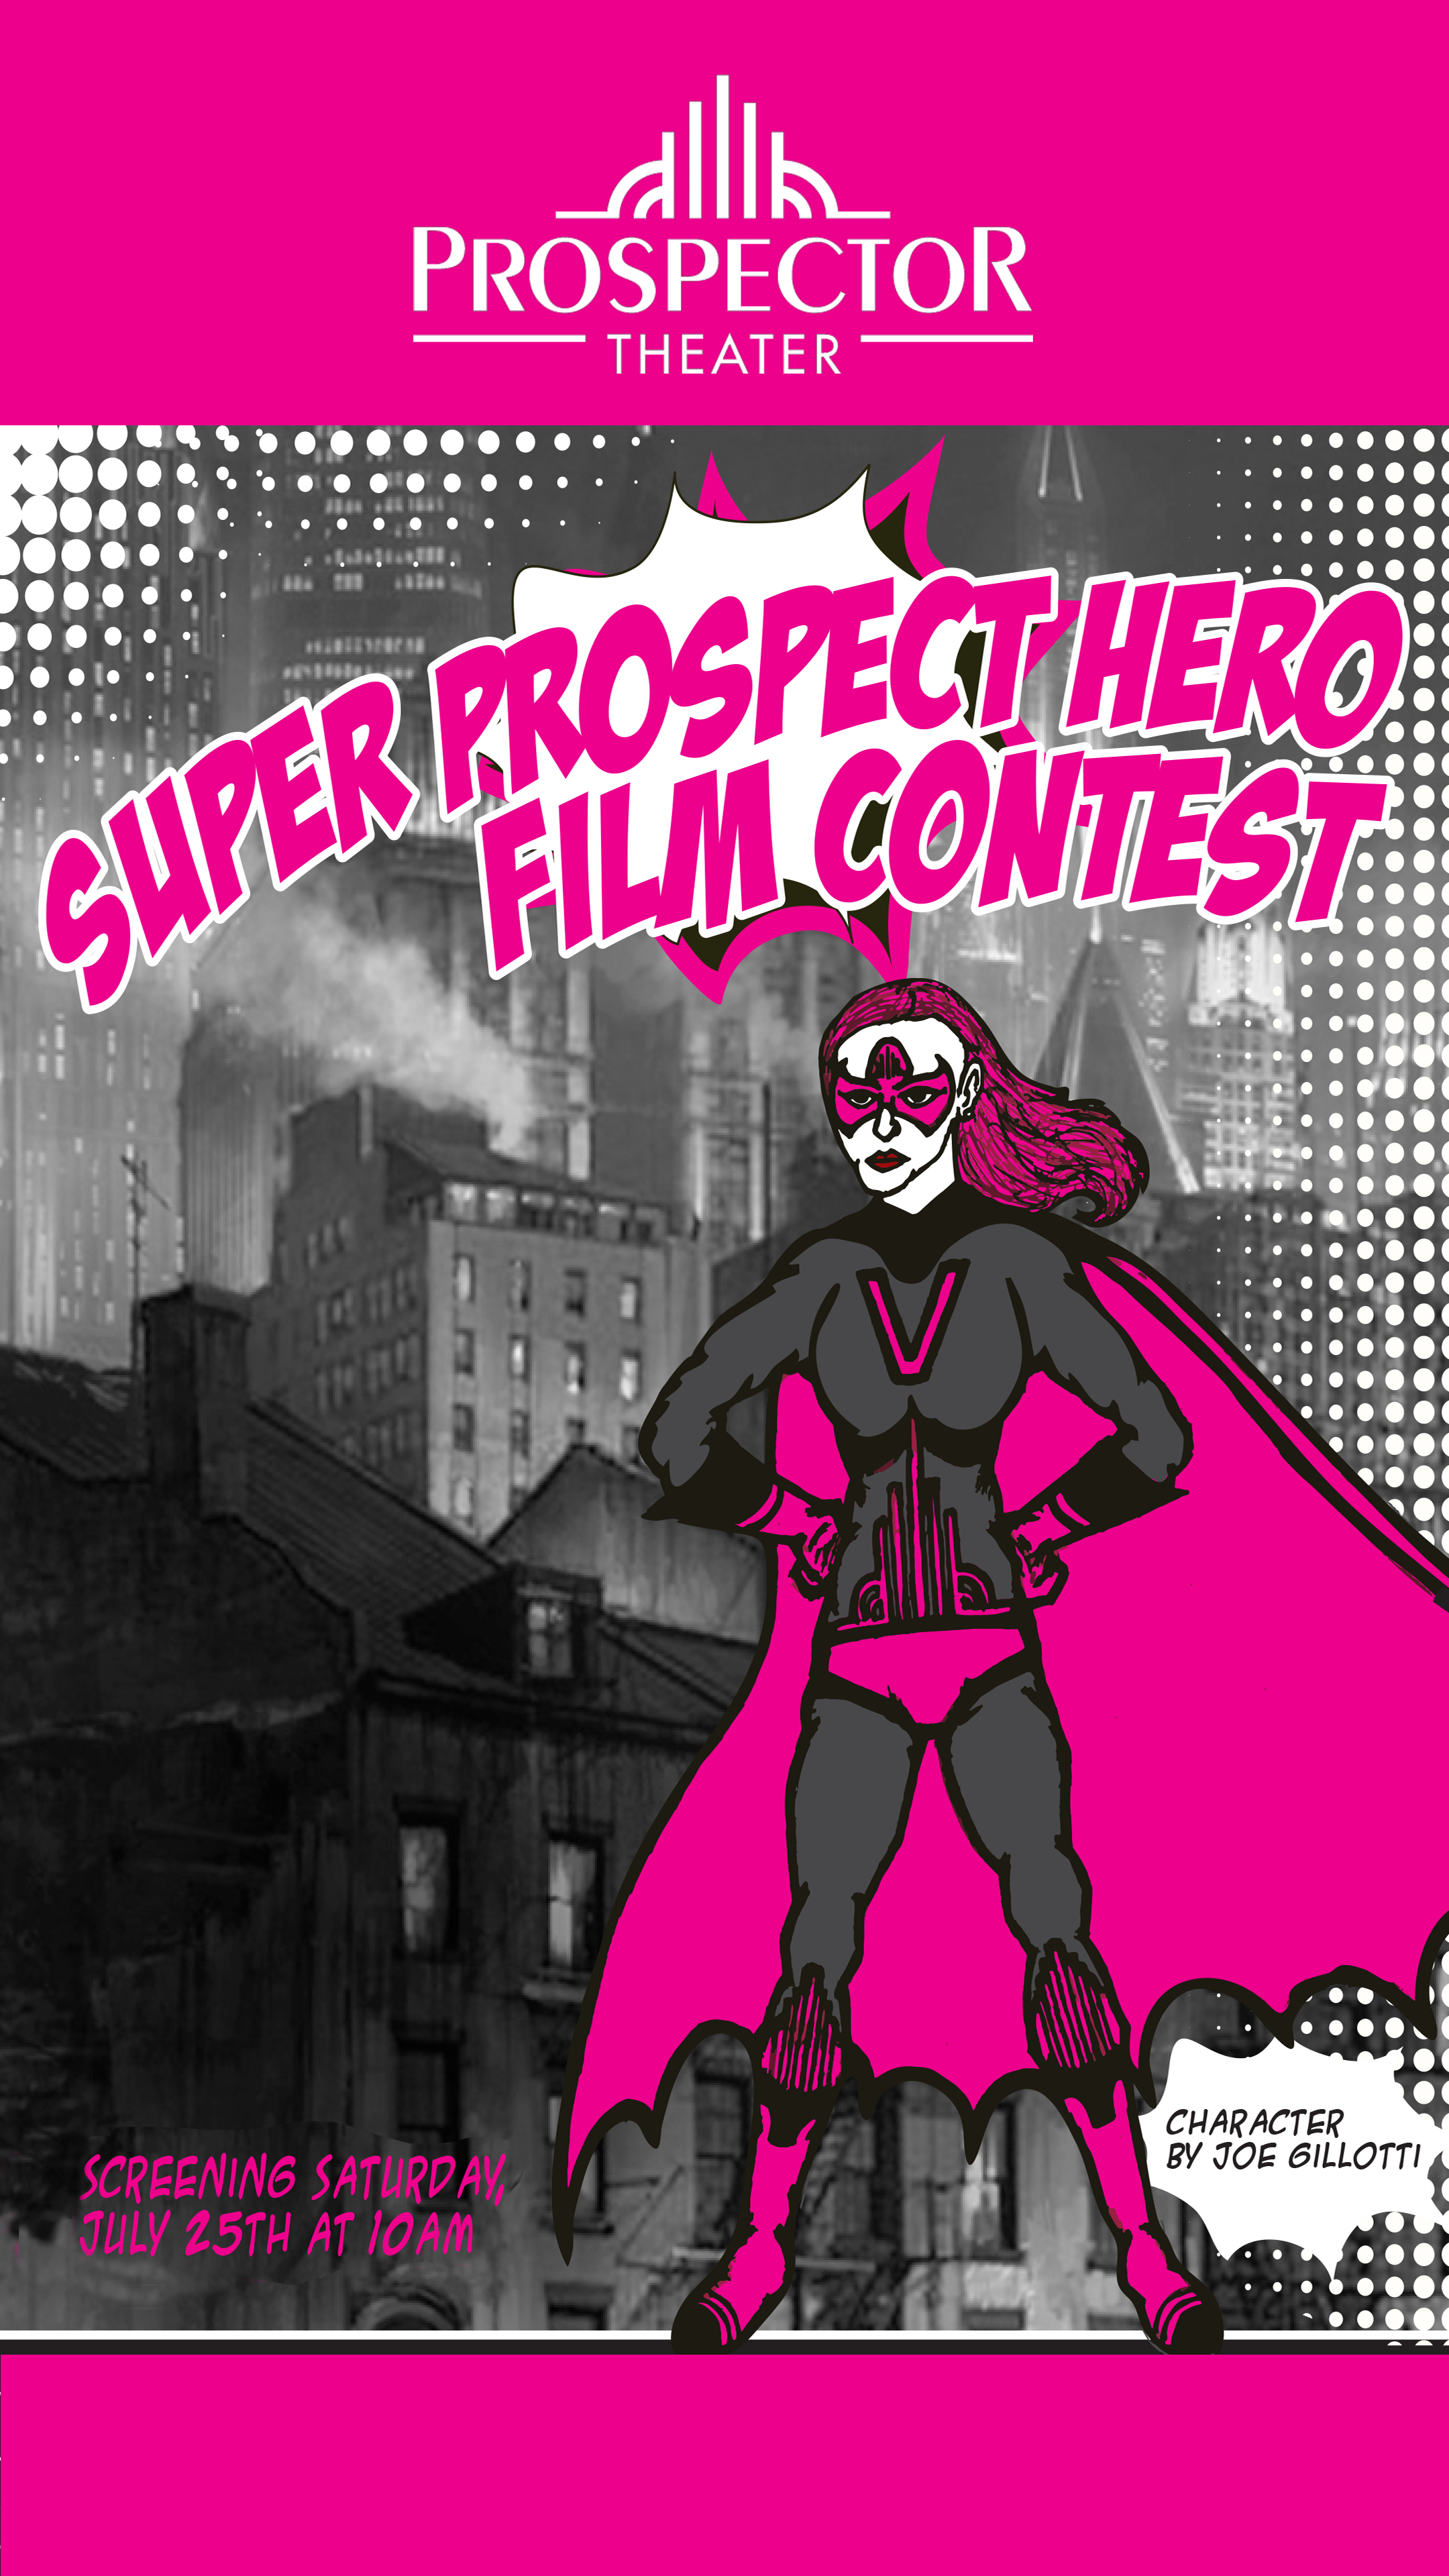 A pink and black-clothed superhero triumphantly stands in a black and white city.